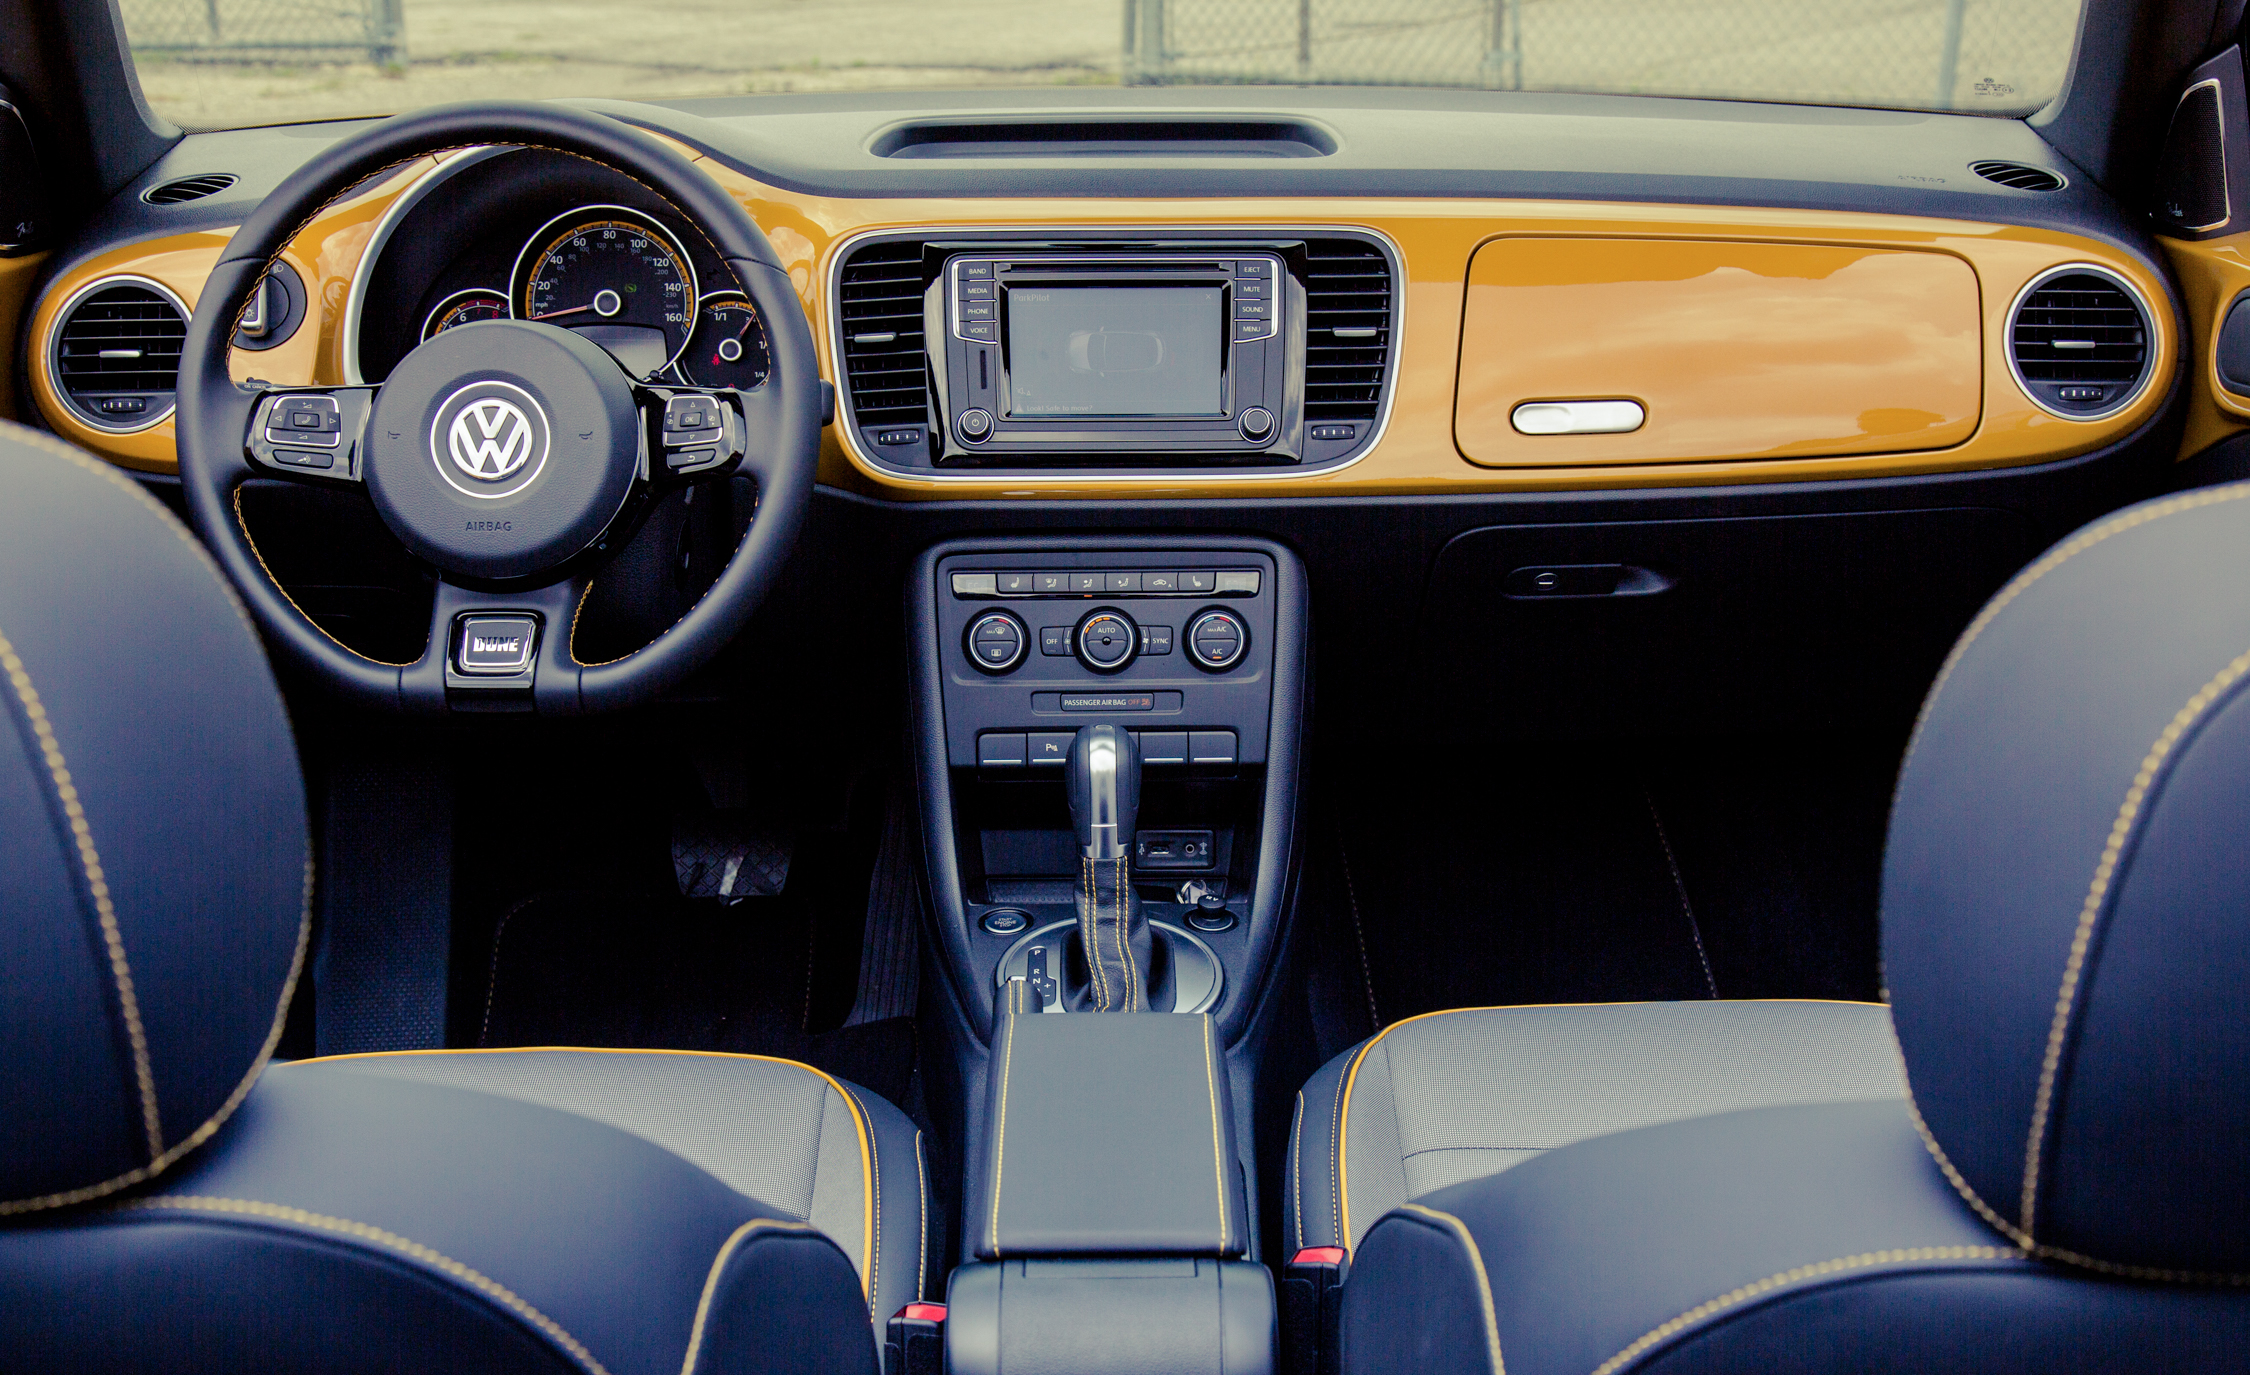 2017 Volkswagen Beetle Dune Convertible Interior Dashboard (View 12 of 19)